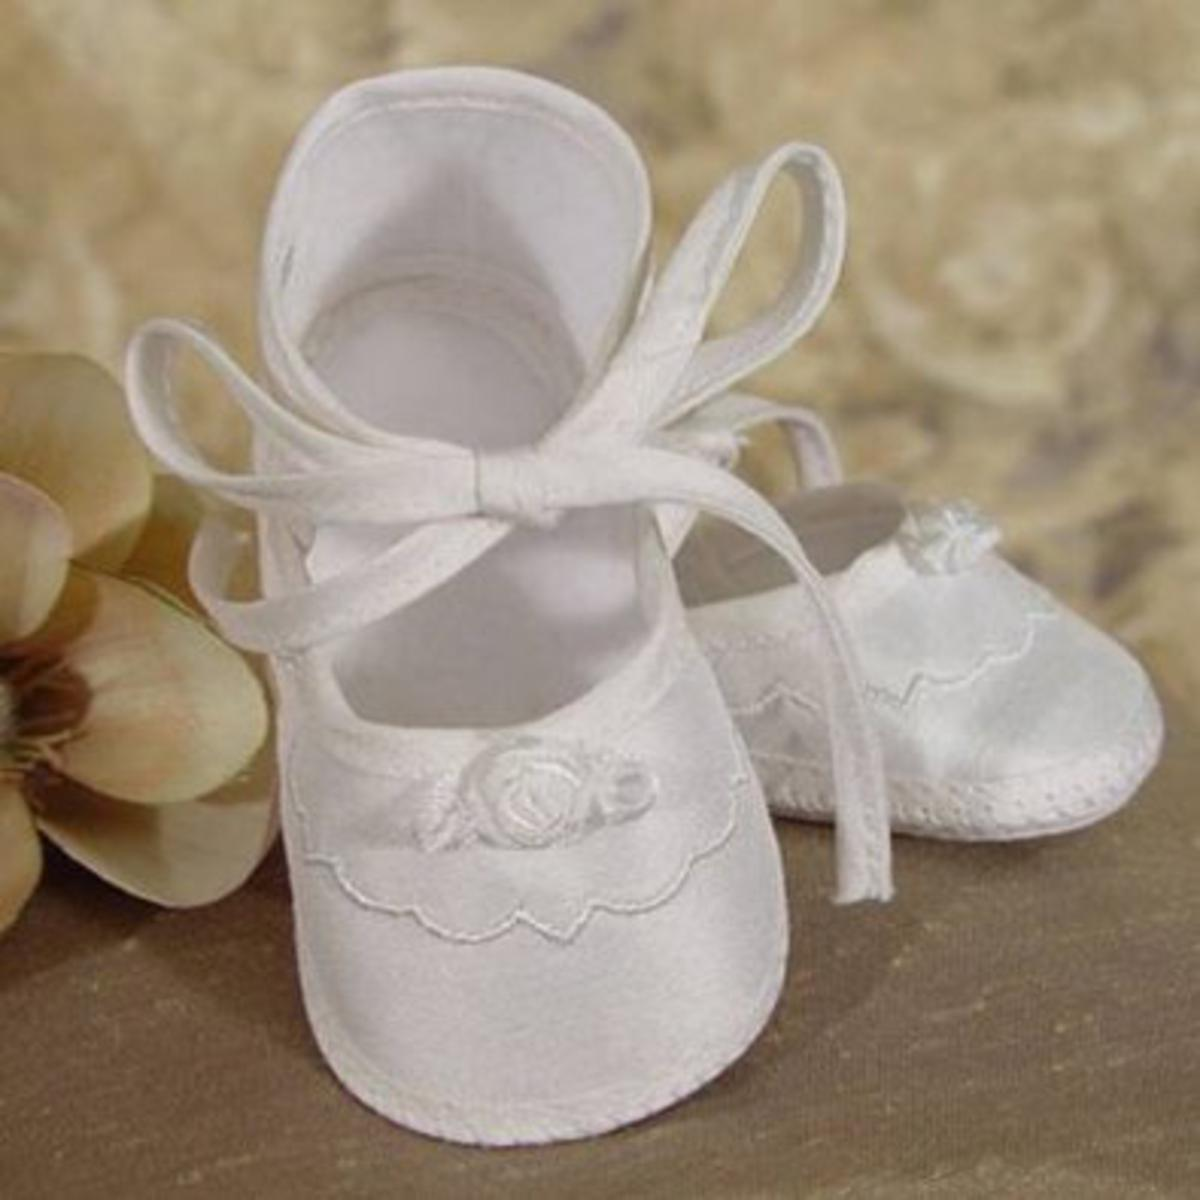 Baby Christening Shoes Are a Wonderful Christening Accessory